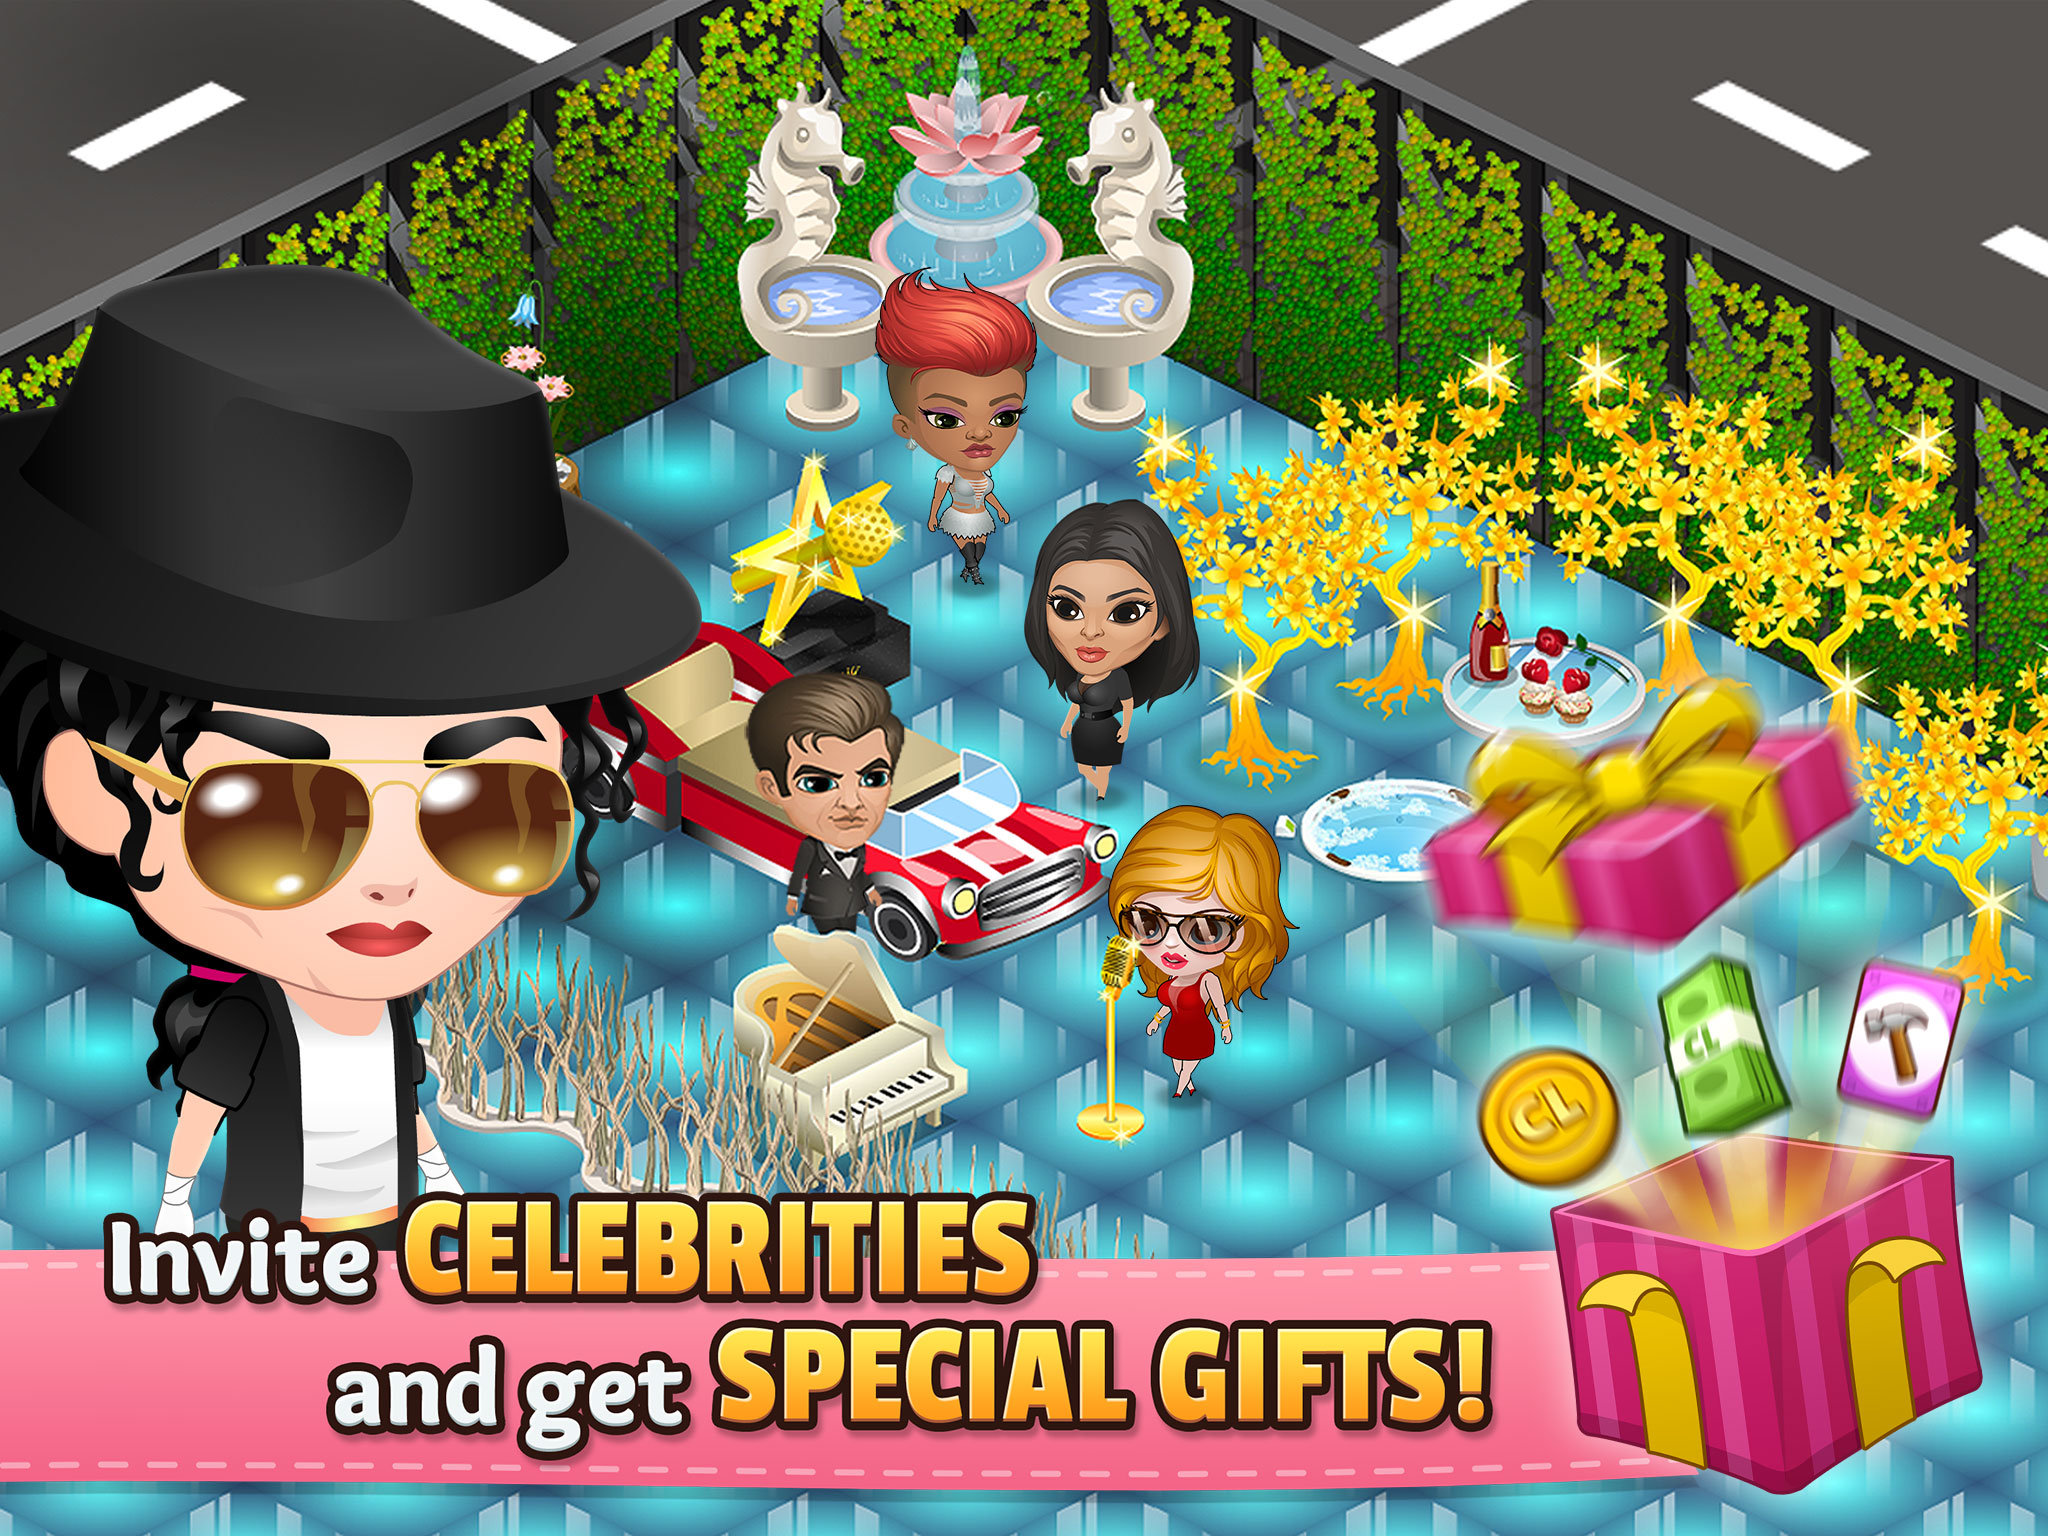 Invite CELEBRITIES and get SPECIAL GIFTS!